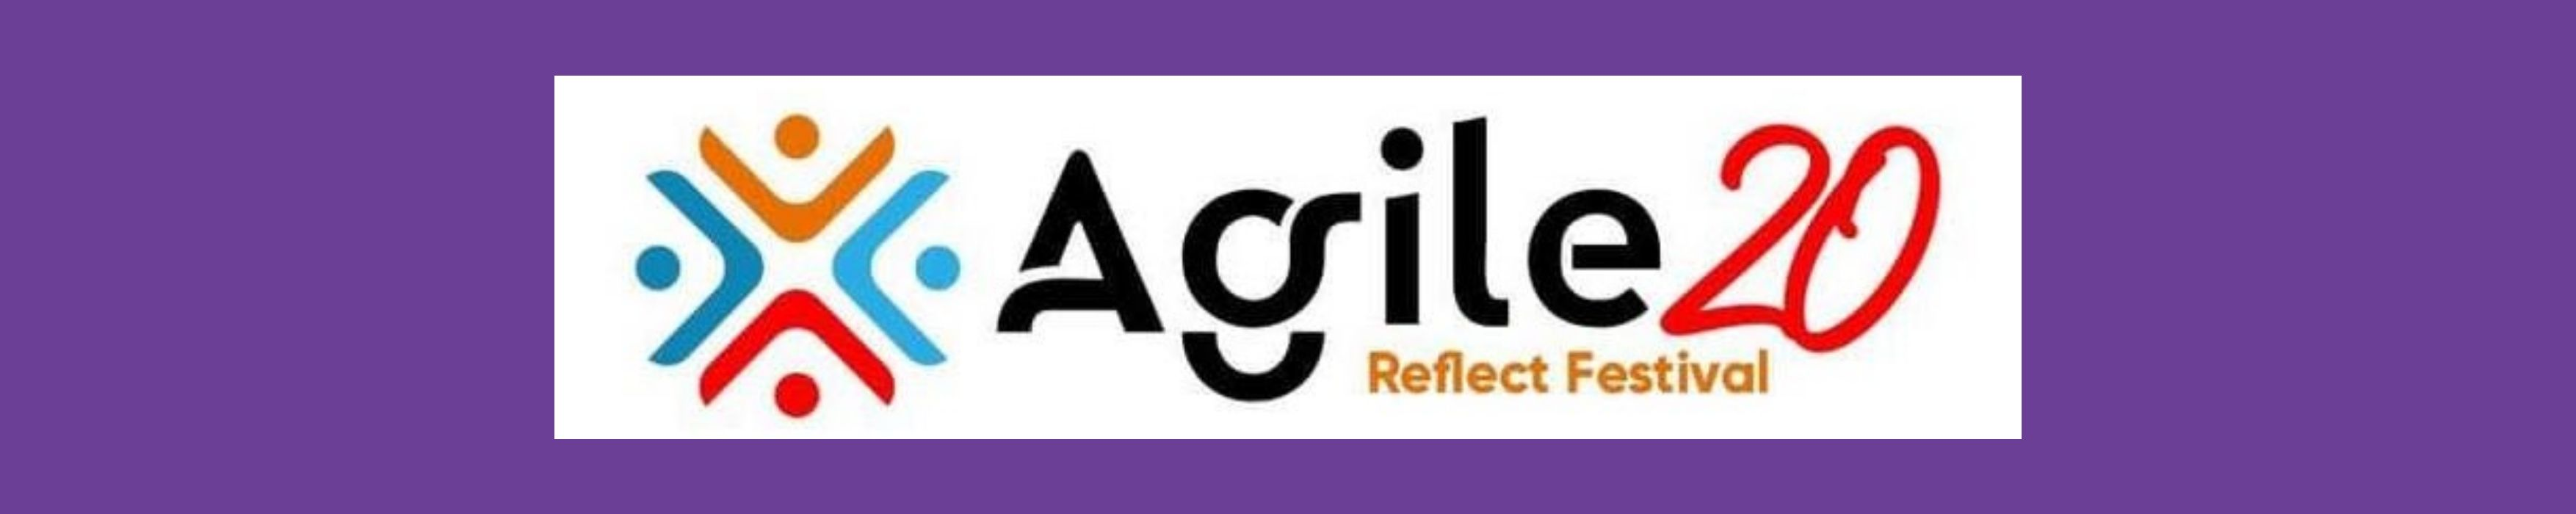 Banner Agile20Reflect Medium Quality